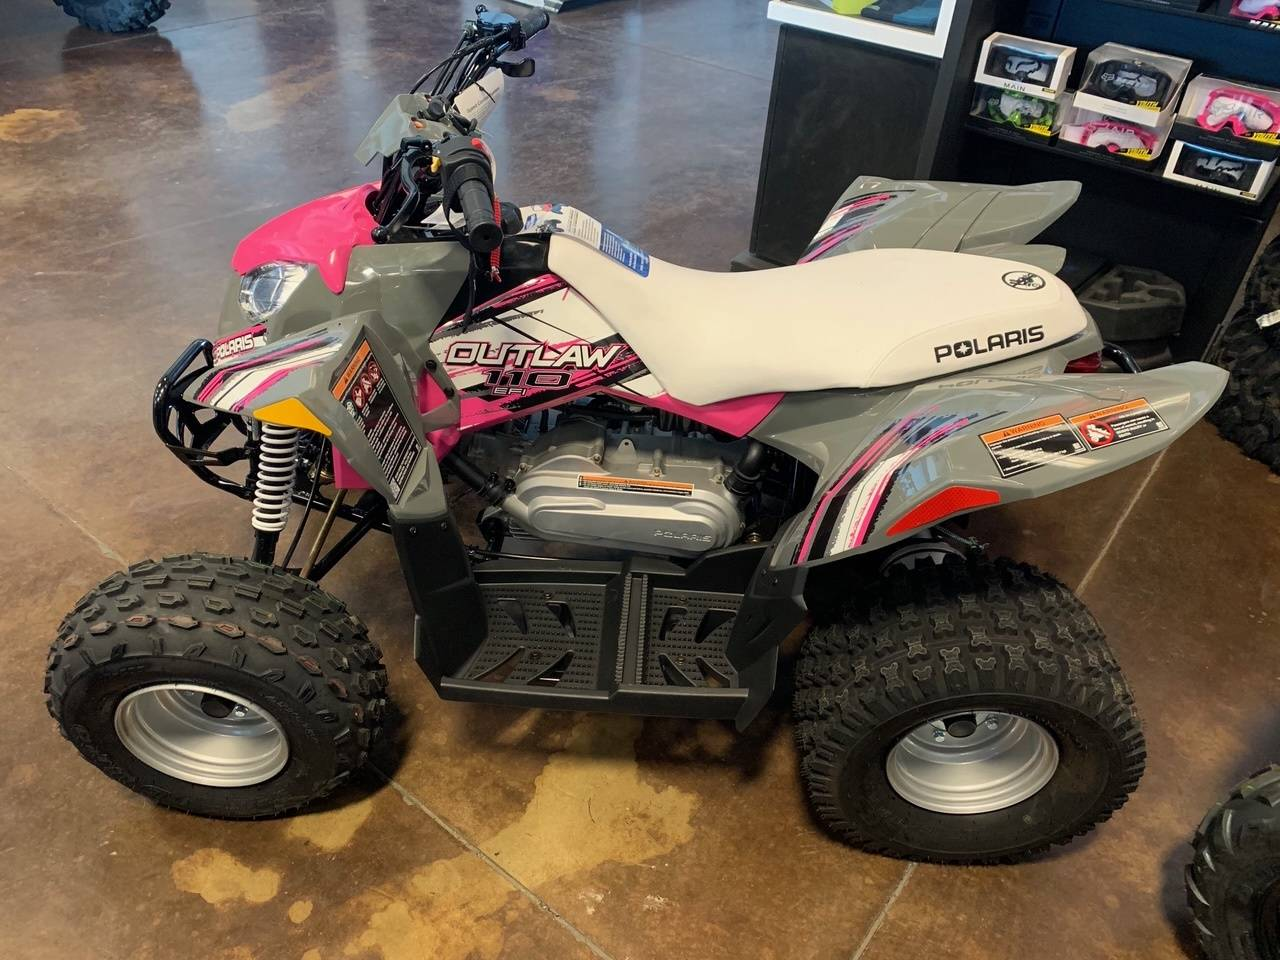 2020 Polaris Outlaw 110 in Tulare, California - Photo 1